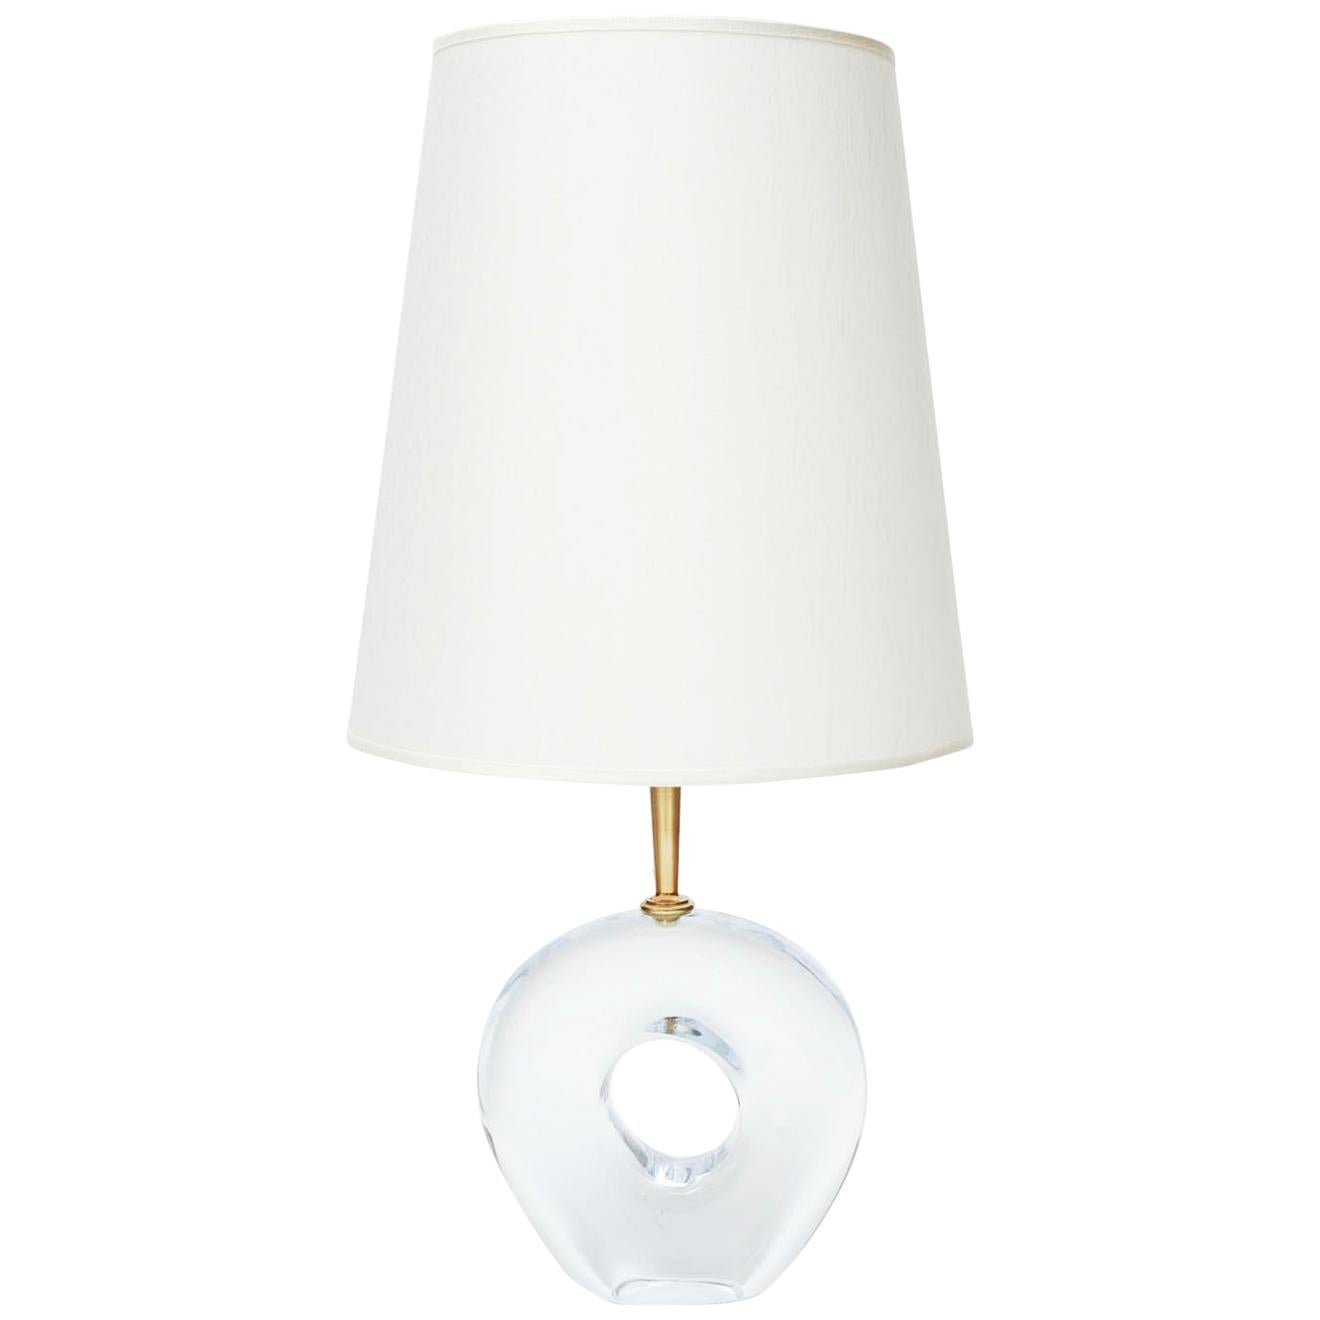 Pair of Unique Table Lamps in Murano Glass by Esperia for Glustin Luminaires